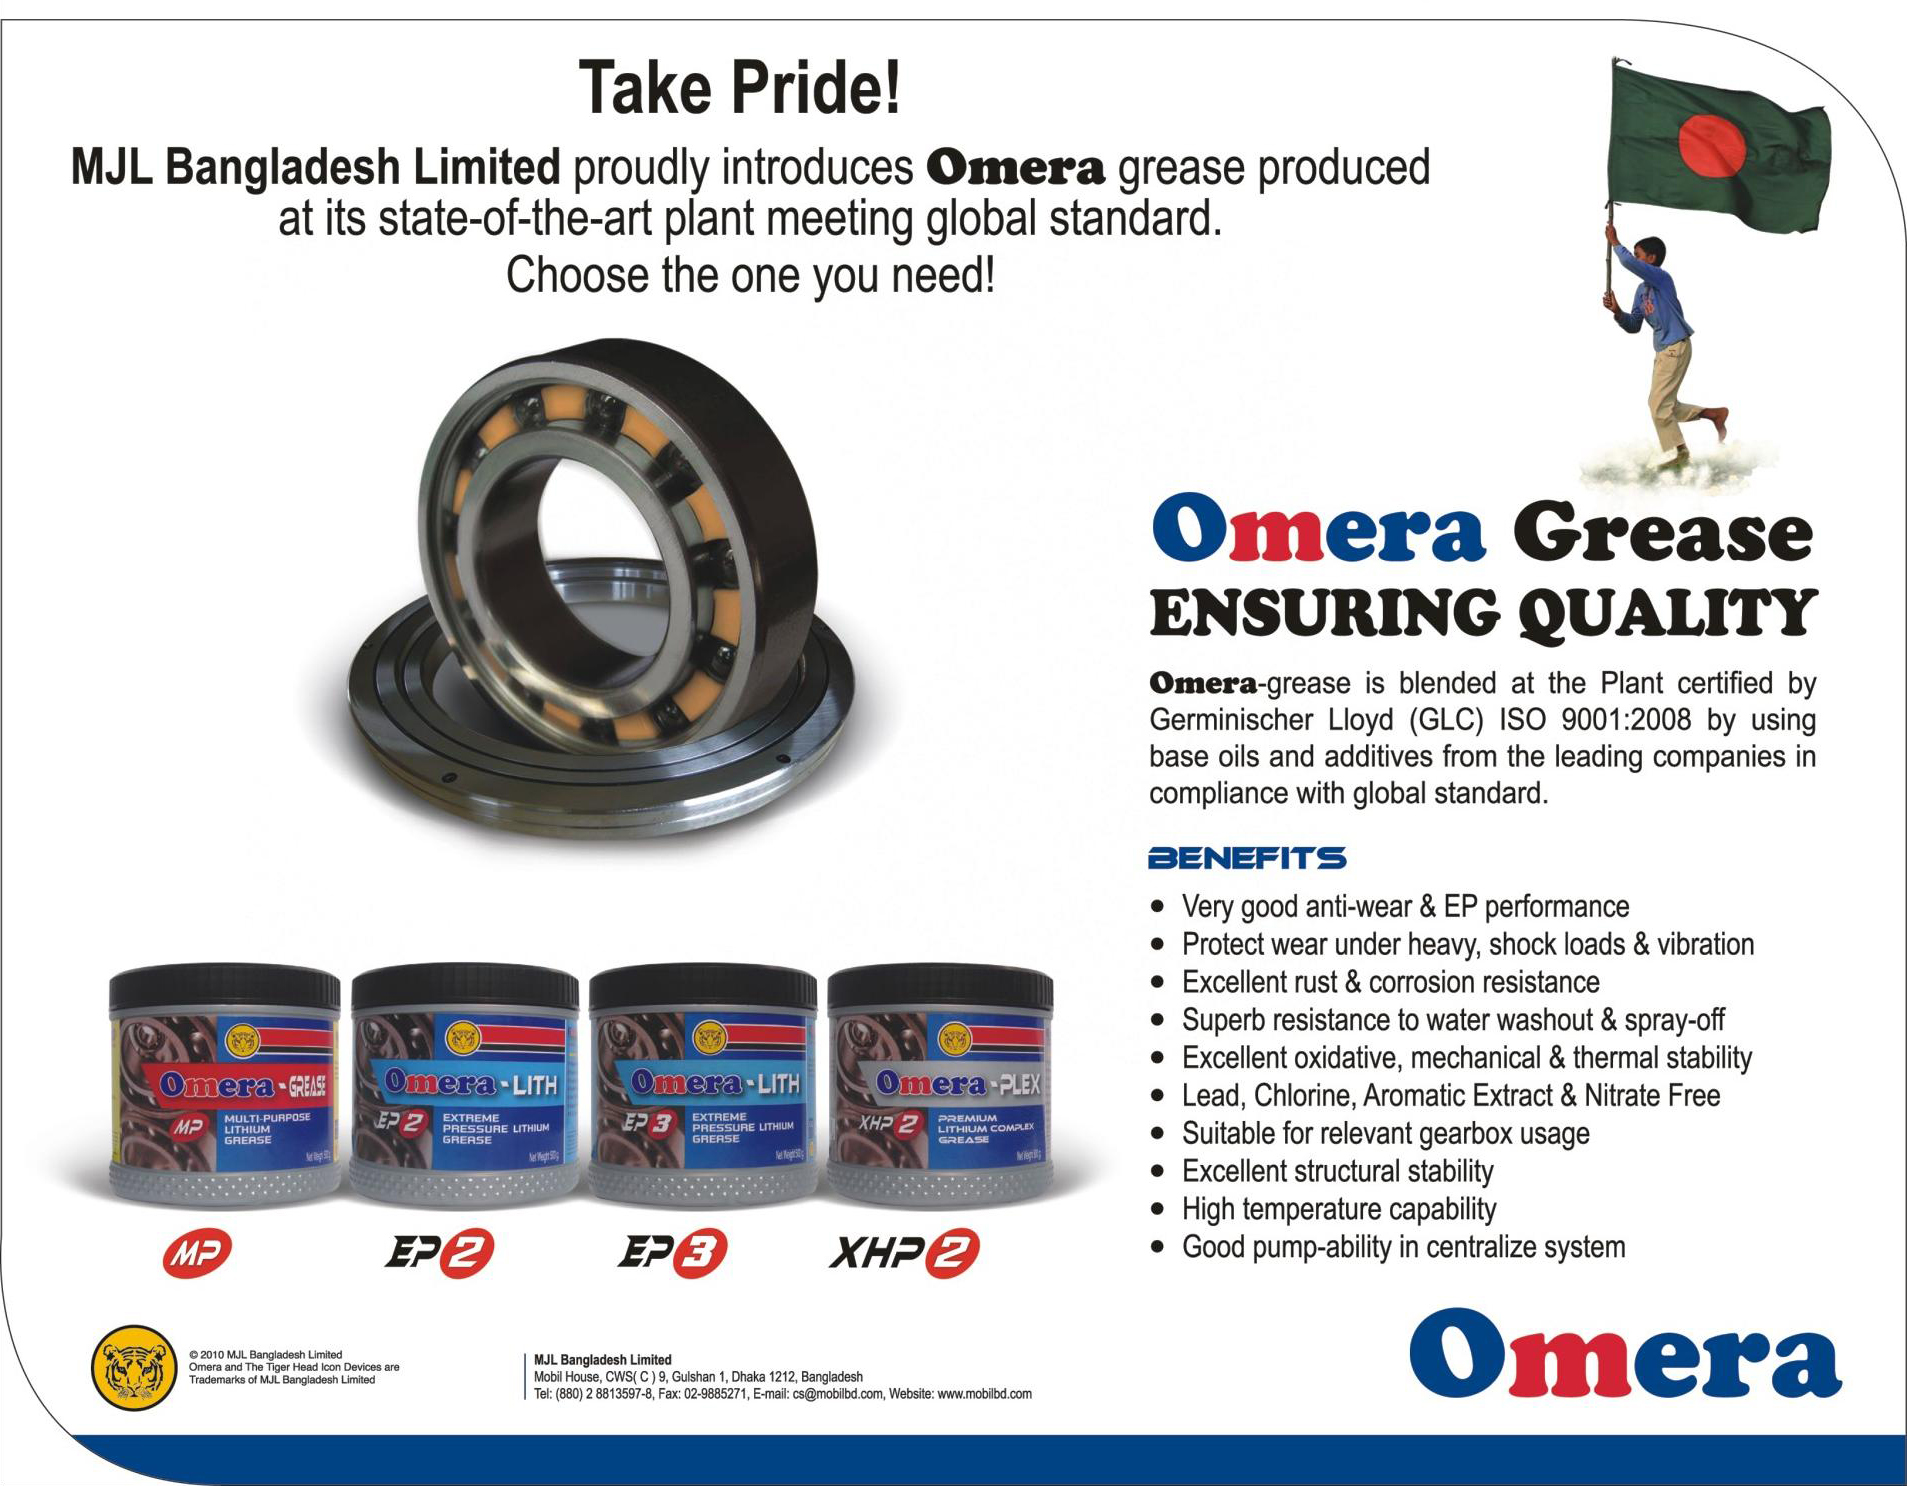 omera grease ad